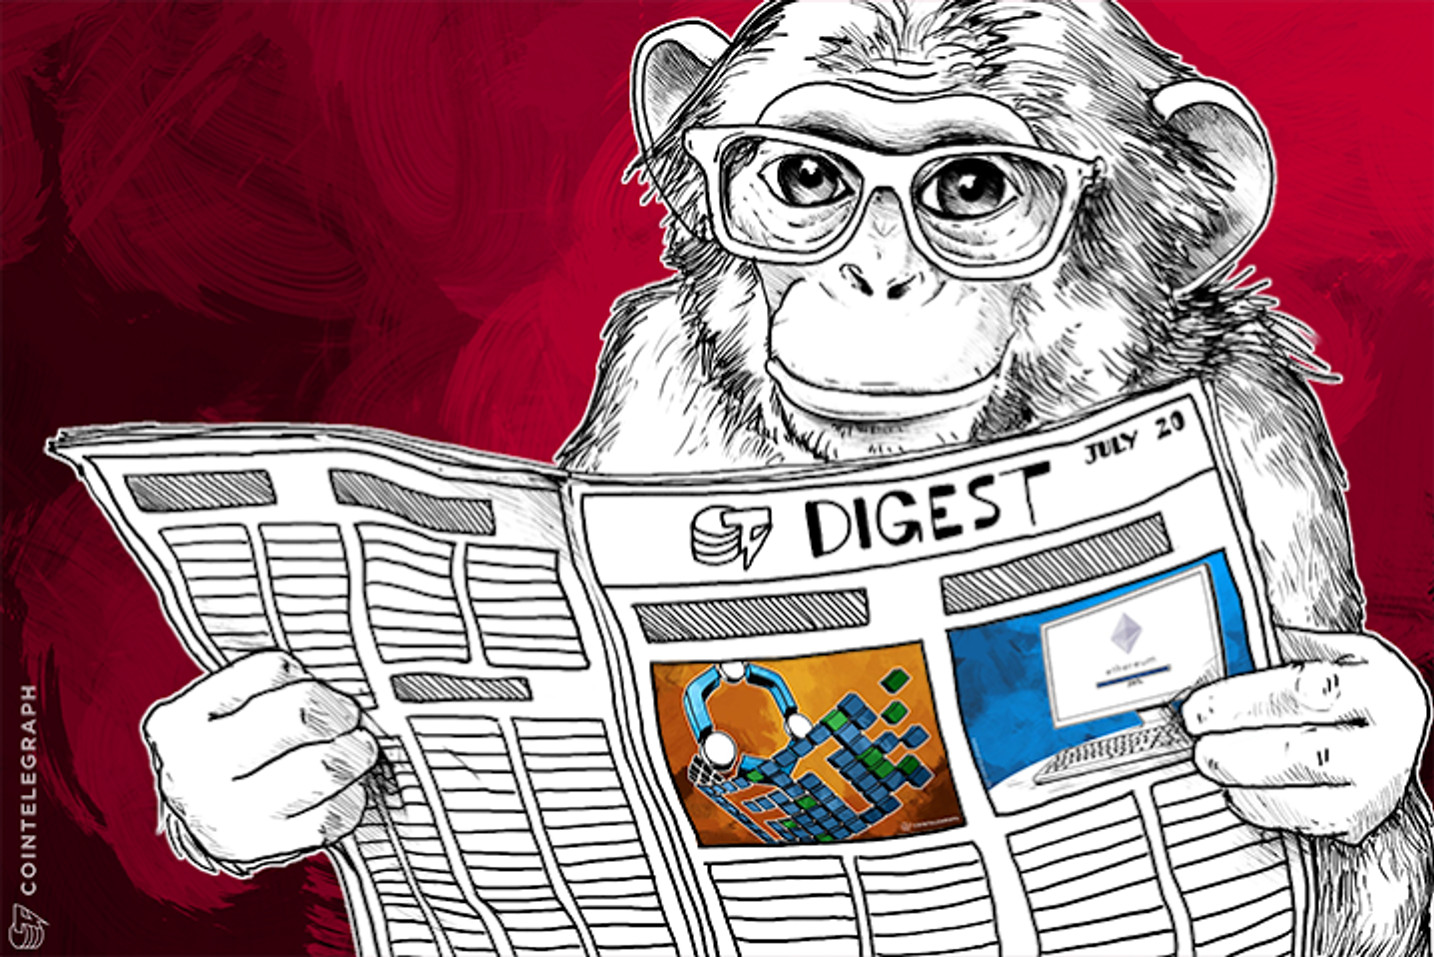 JUL 20 DIGEST: Bitcoin is the Fastest Growing Area of VC Funding; Keybase Raises $10.8 Million